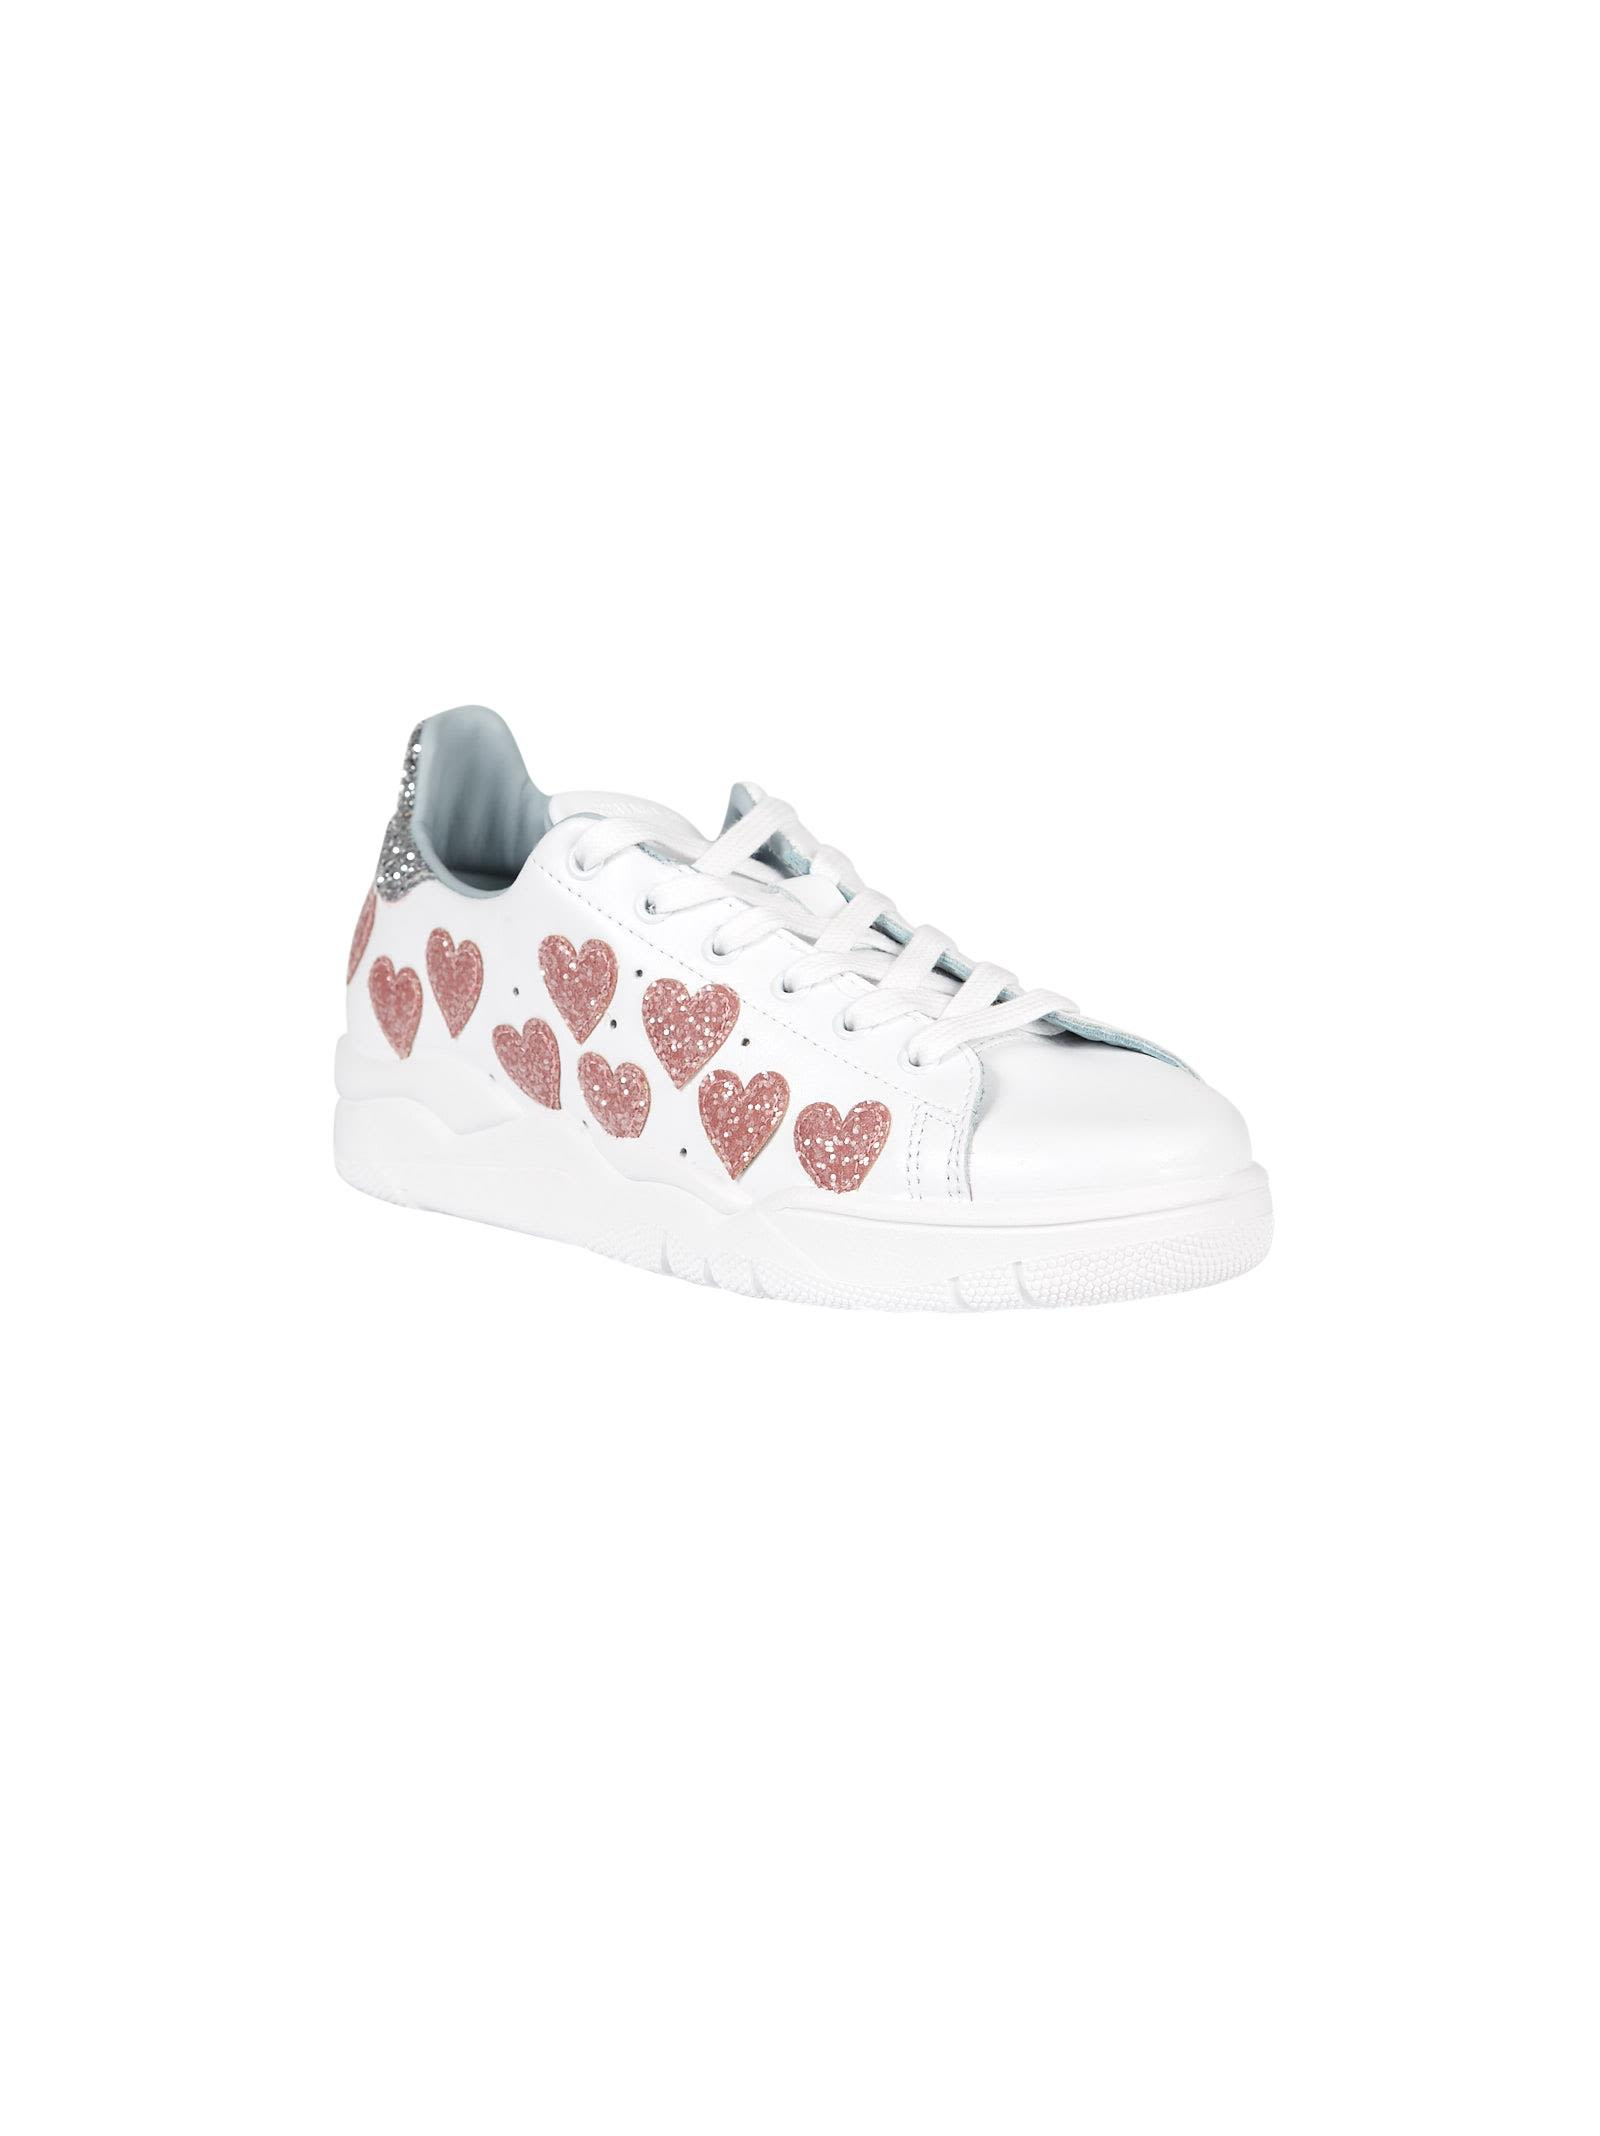 Chiara Ferragni Embellished Heart Roger Sneakers Discount 100% Authentic PKxYC5I45l